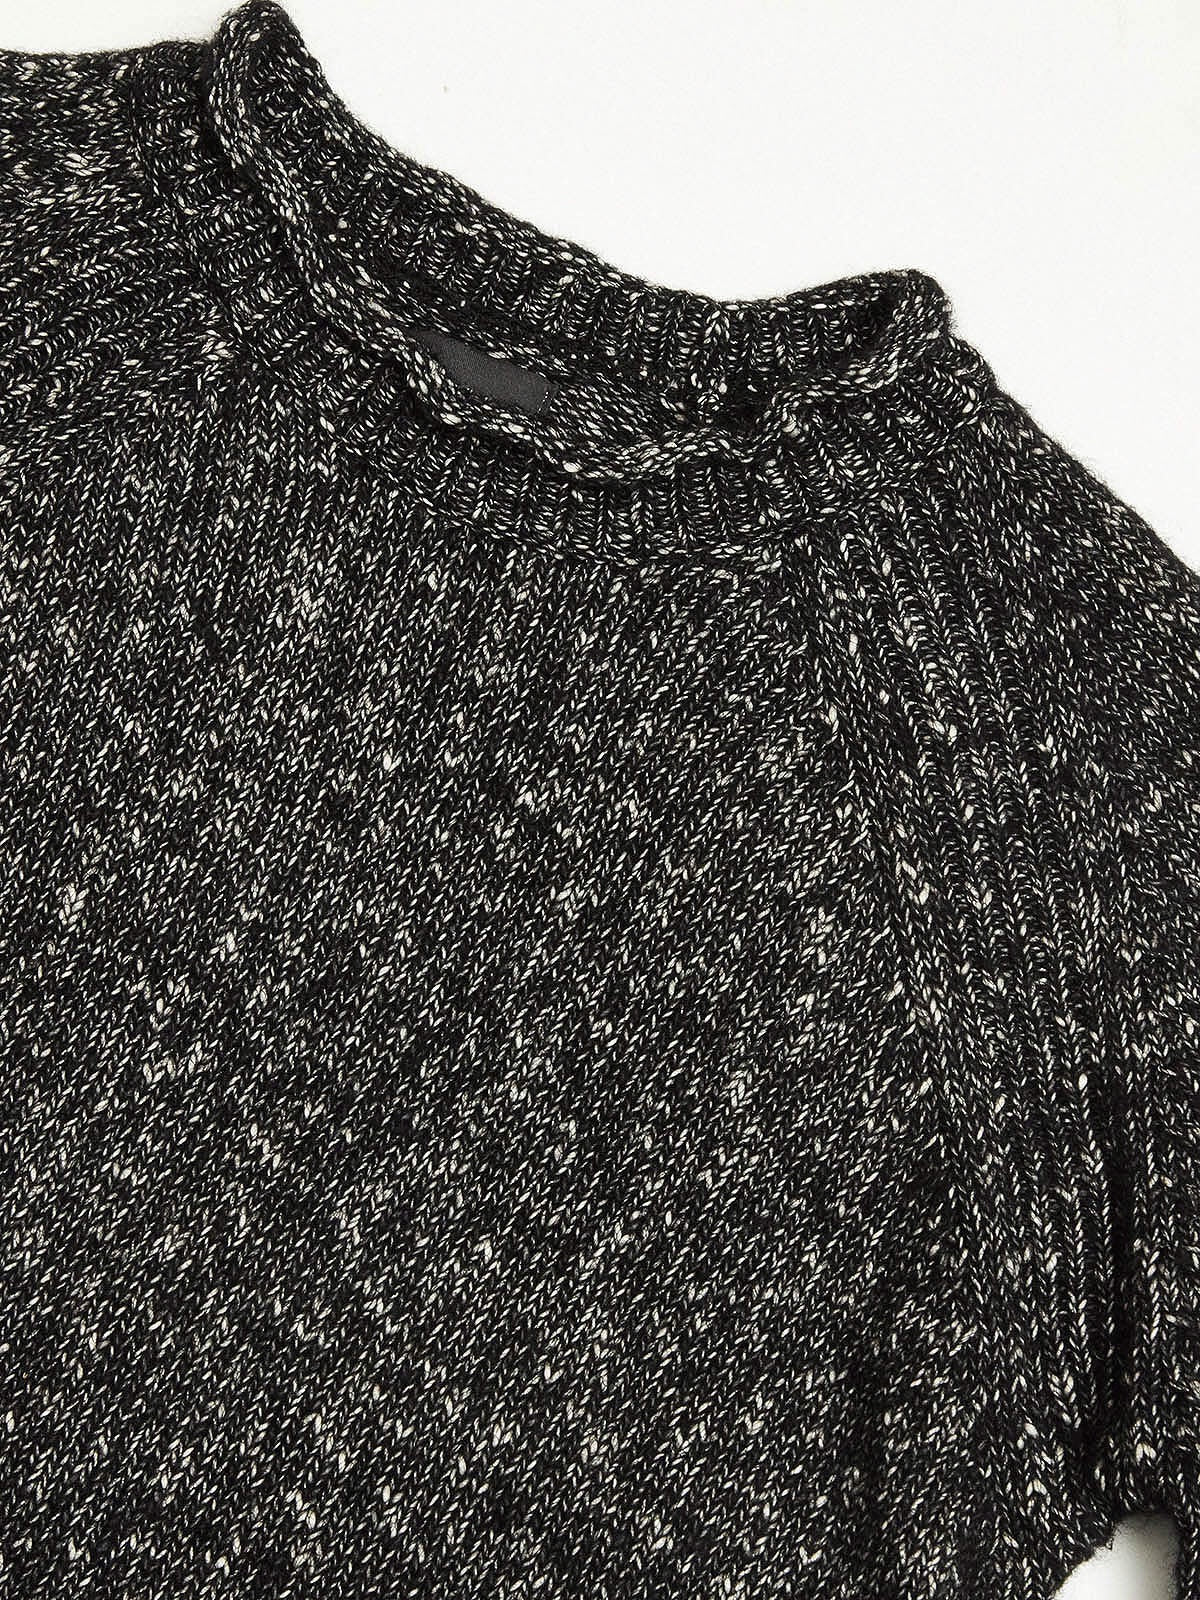 Blue de Genes Black Cenetiempo Knit